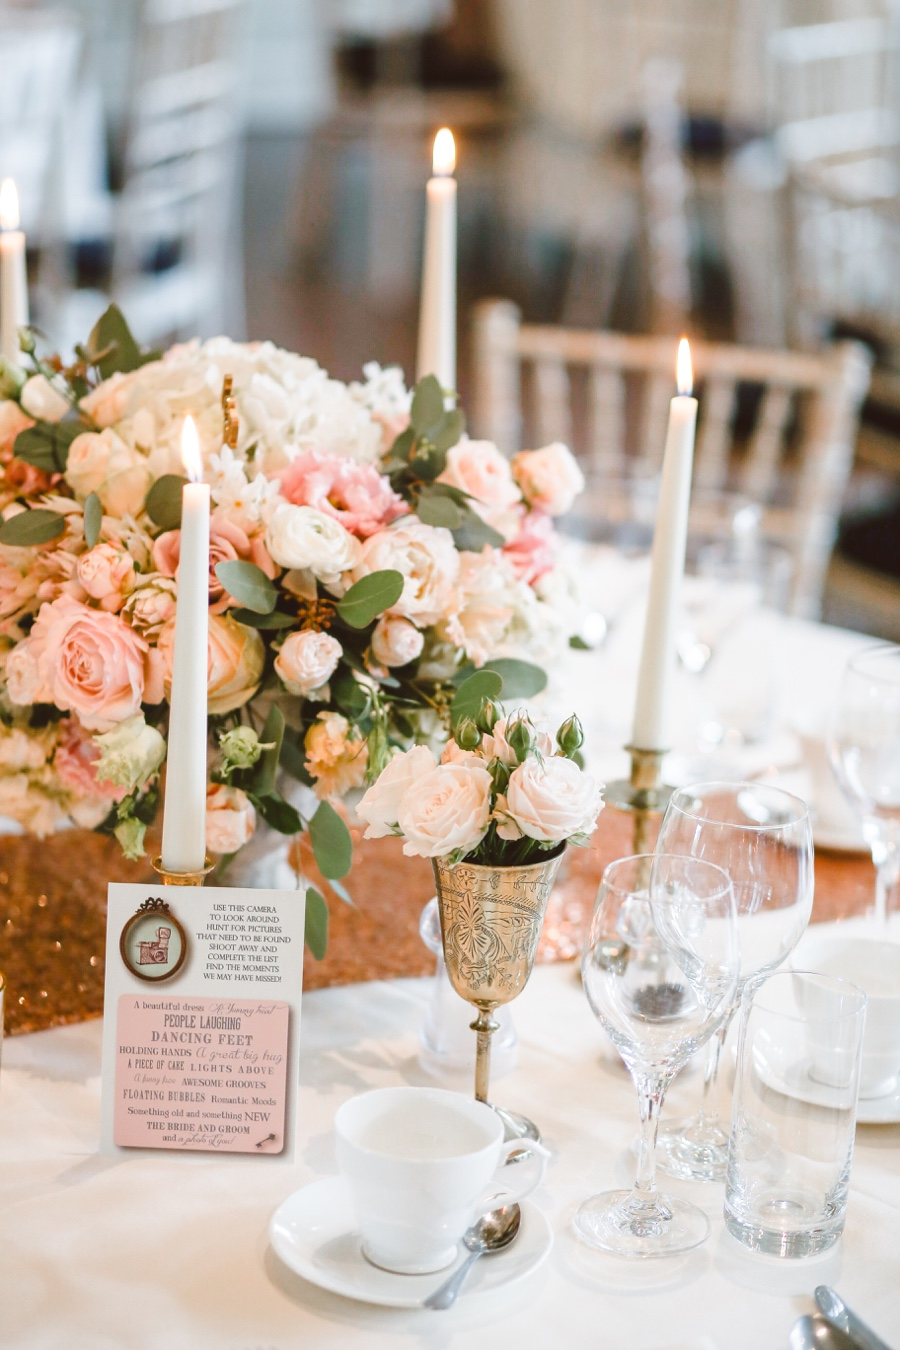 How to decorate your wedding tables for under £10